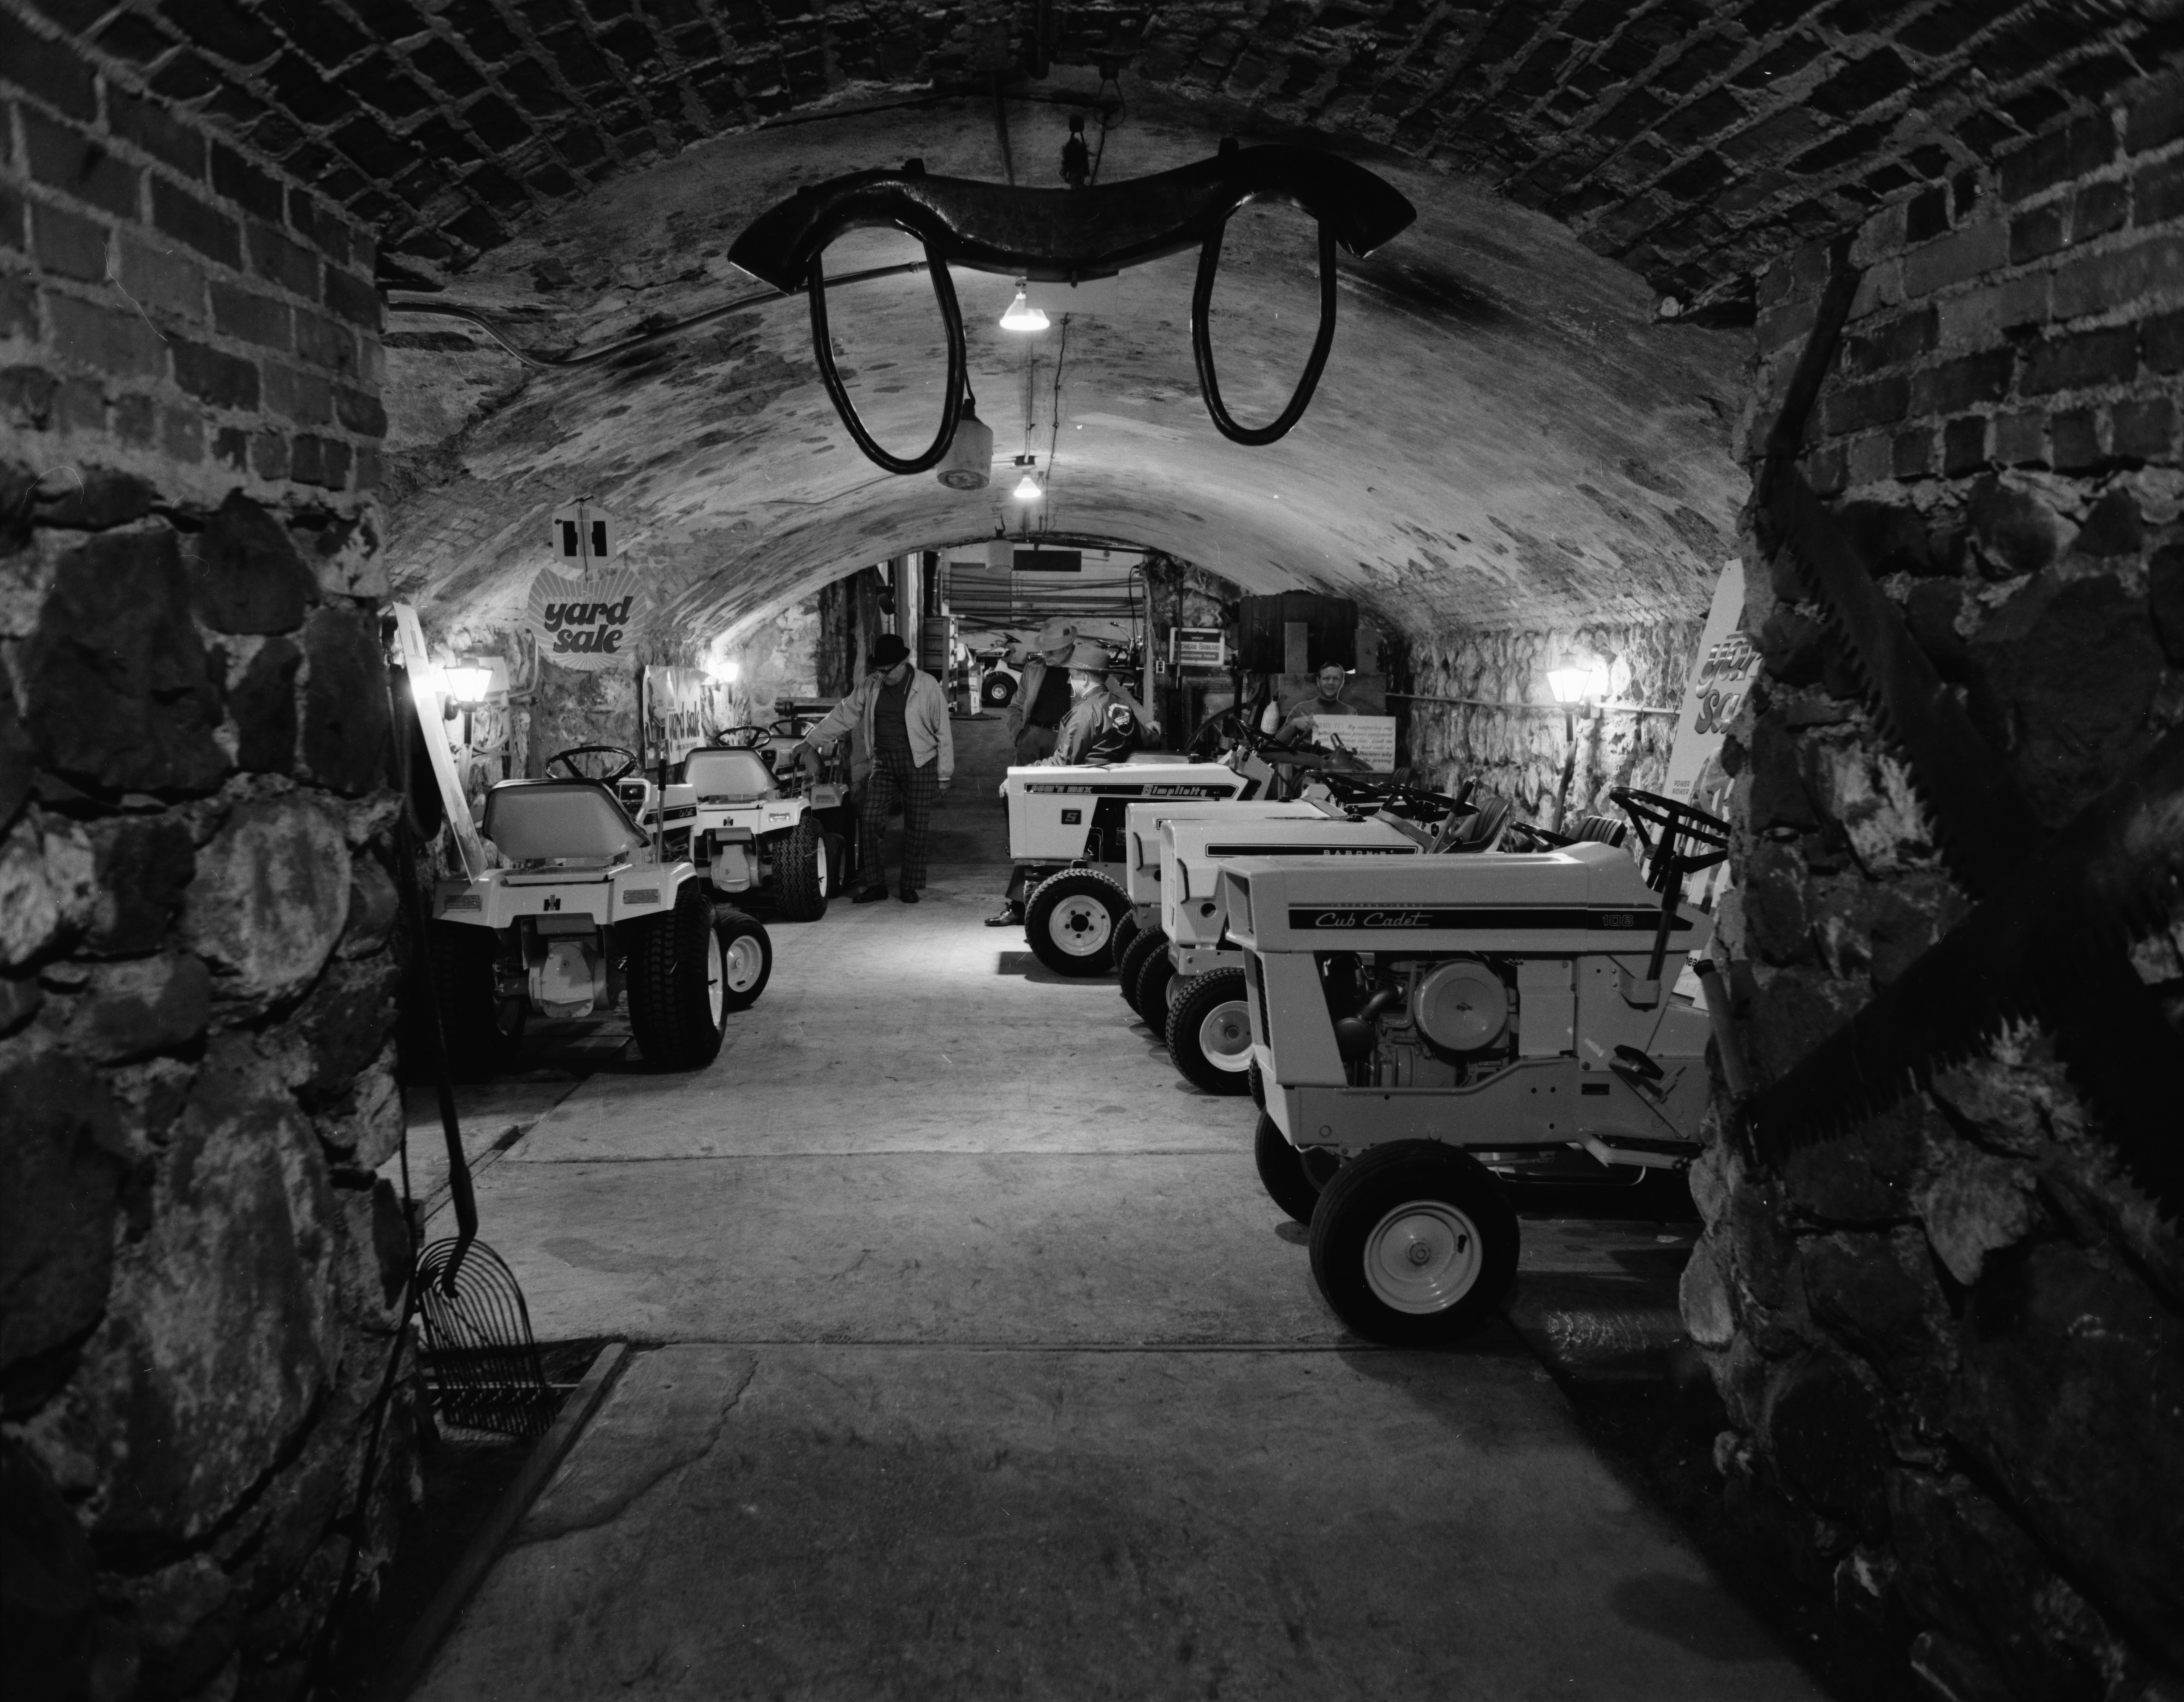 Old wine cellar in Ann Arbor Implement Company, April 1974 image